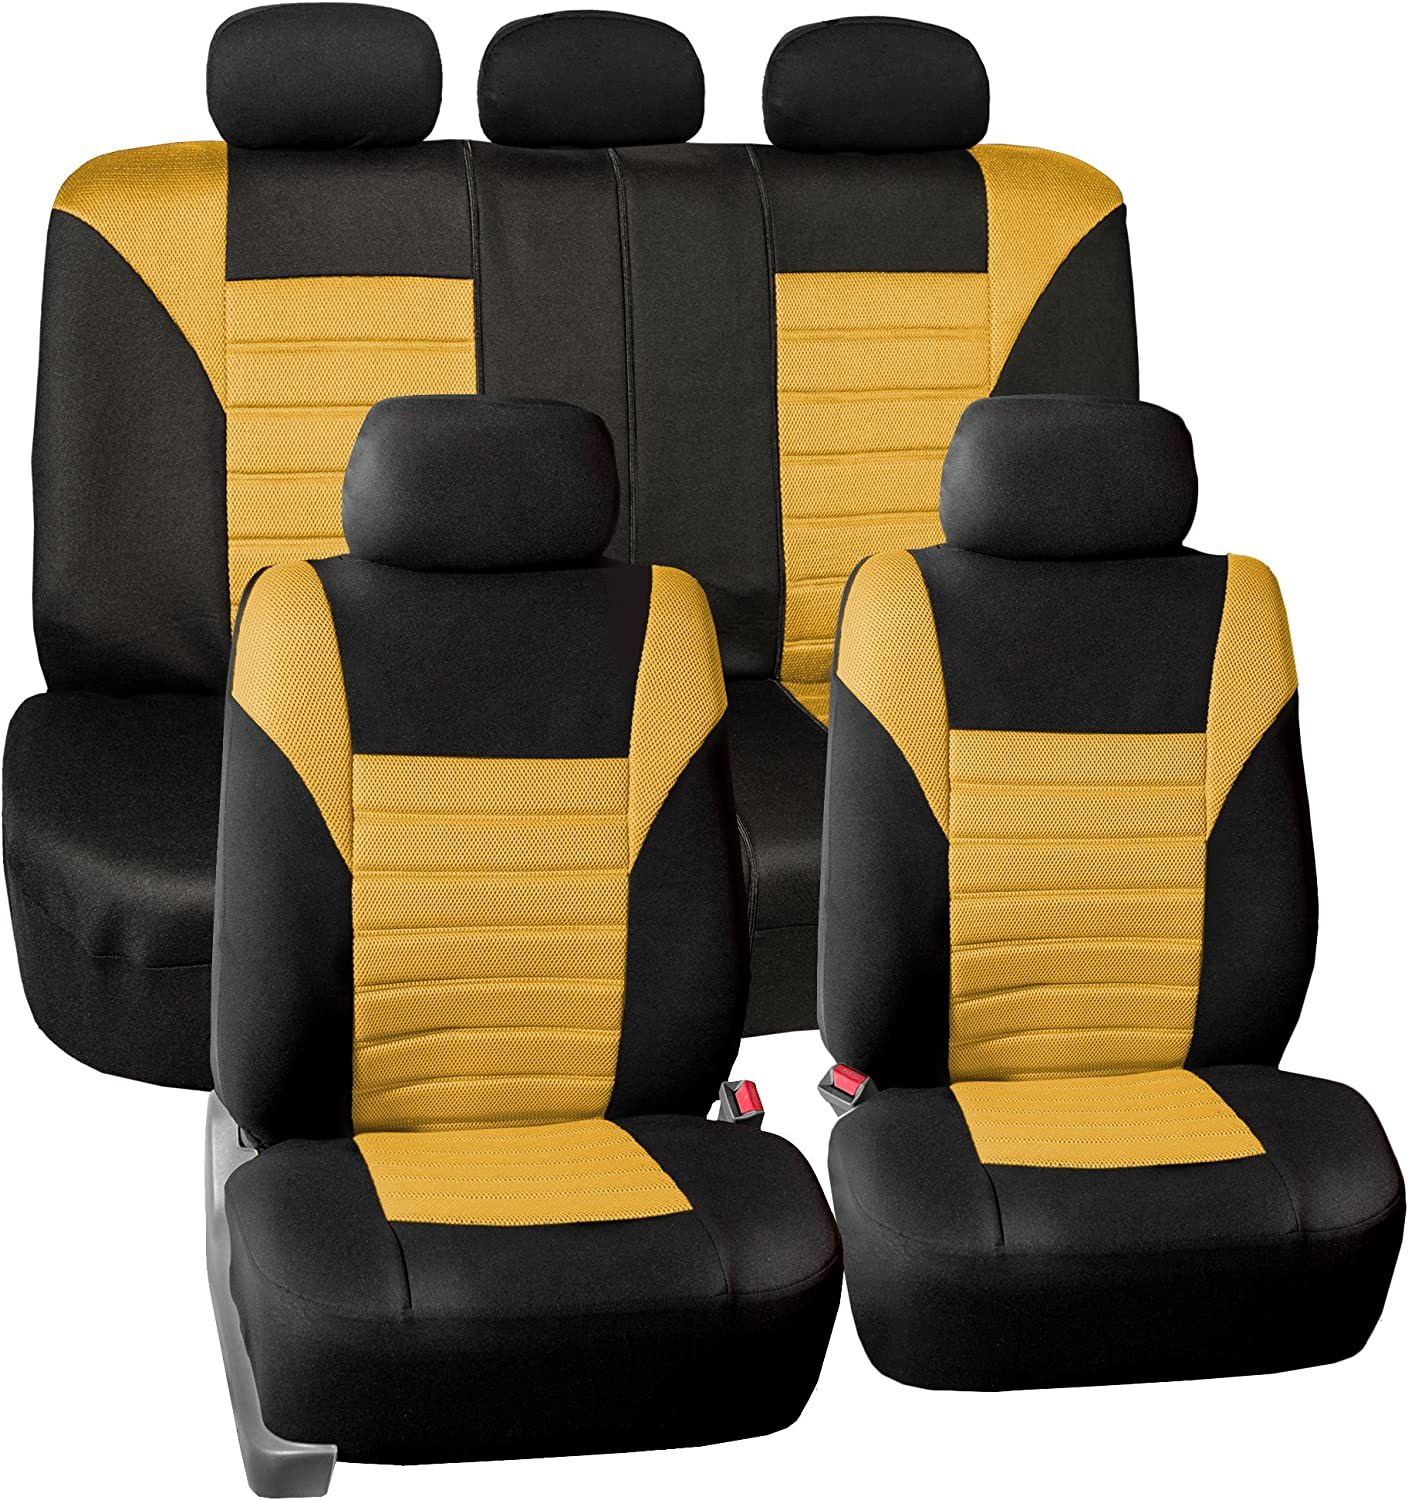 FH Group FH-FB068115 Premium 3D Air Mesh Seat Covers Full Set (Airbag & Split Ready), Yellow/Black Color- Fit Most Car, Truck, SUV, or Van